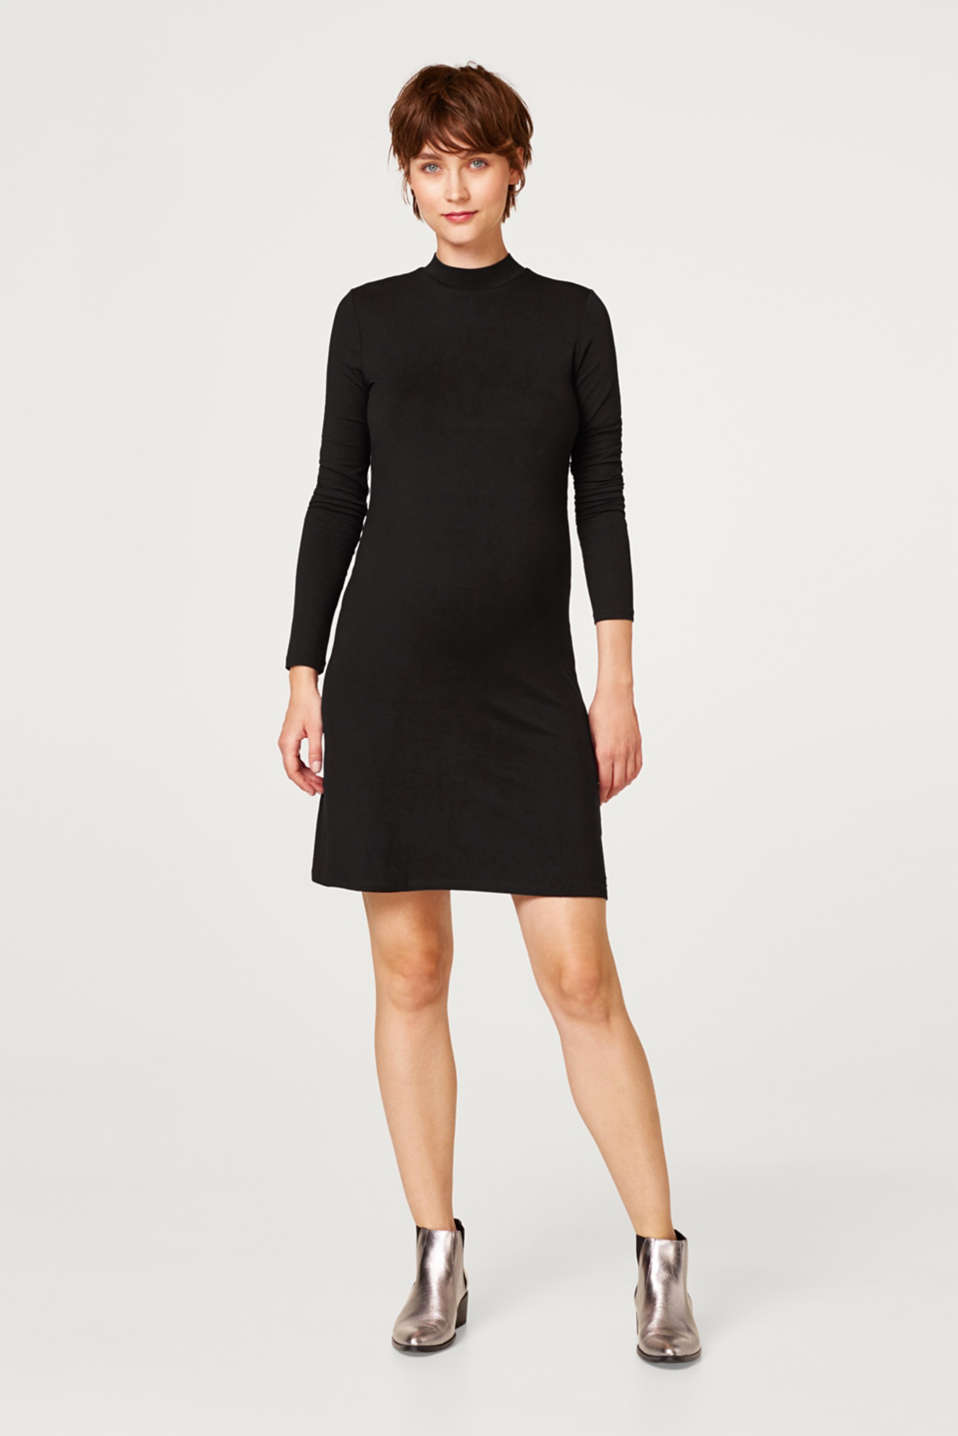 Stretch jersey dress with a stand-up collar, LCBLACK, detail image number 1